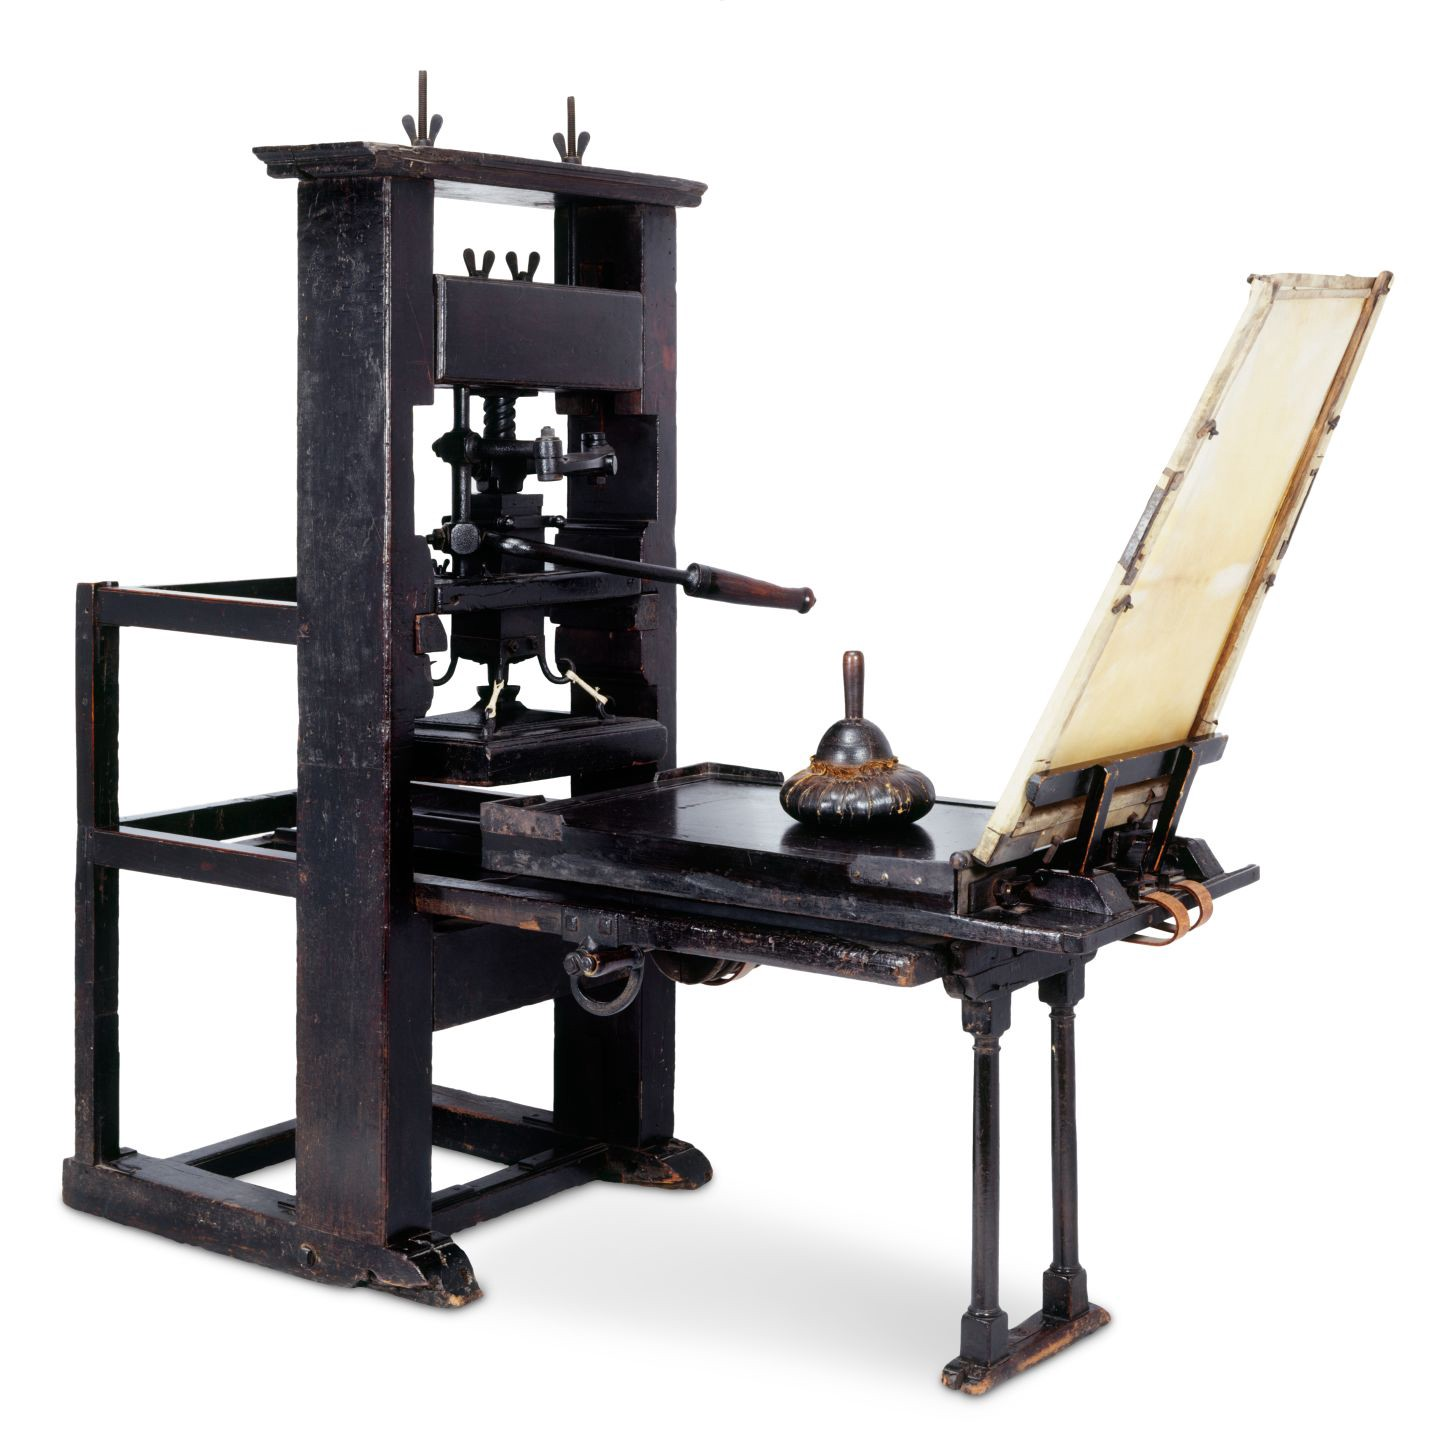 the history of johannes guttenbergs printing press The printing press had developed from the wine press in the rhine valley it was there in 1440 that johannes gutenberg (c1397-1468) began using the printing press in conjunction with a series of blocks each bearing a single letter on its face.